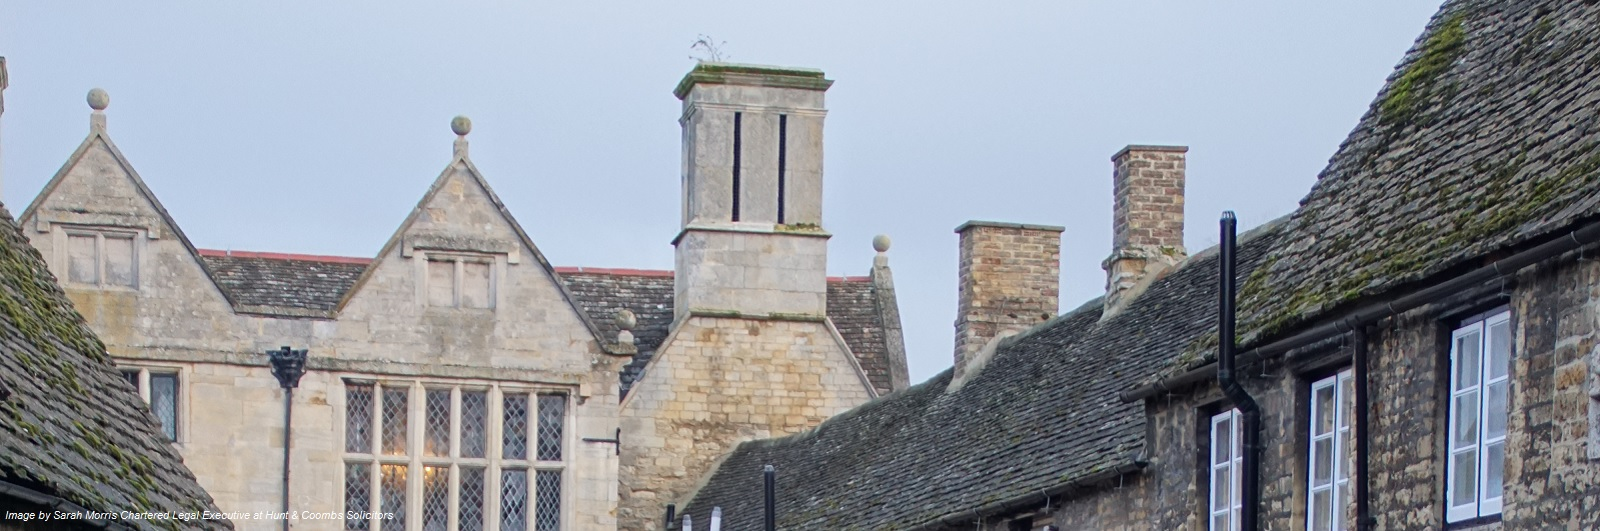 Hunt & Coombs Solicitors, Lawyers located in Oundle